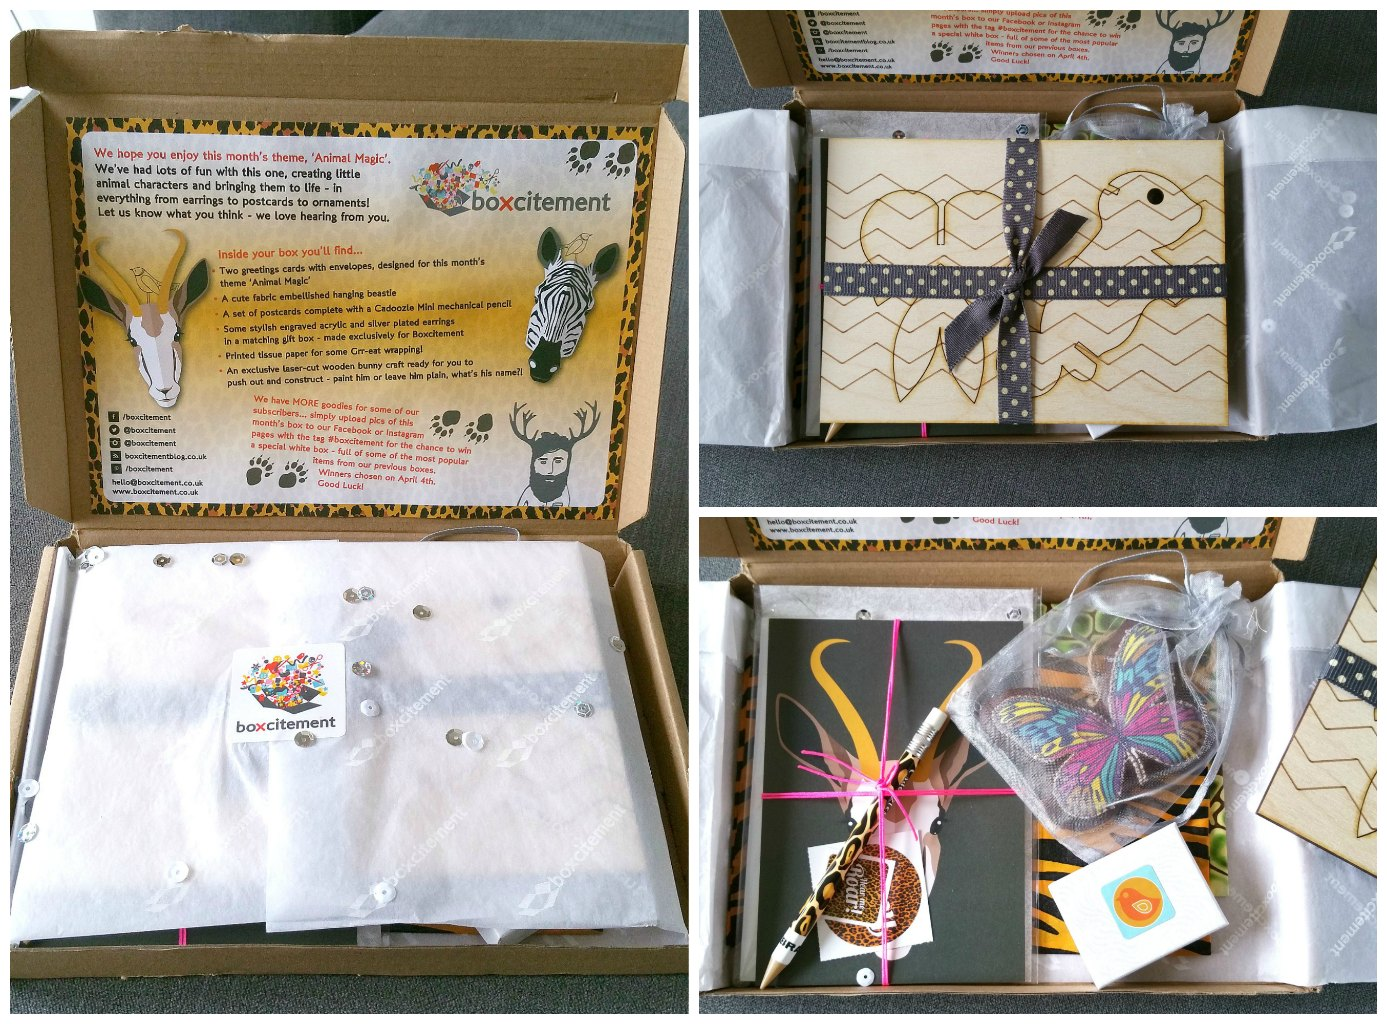 Boxcitement, art and craft subscription box, lifestyle subscription box